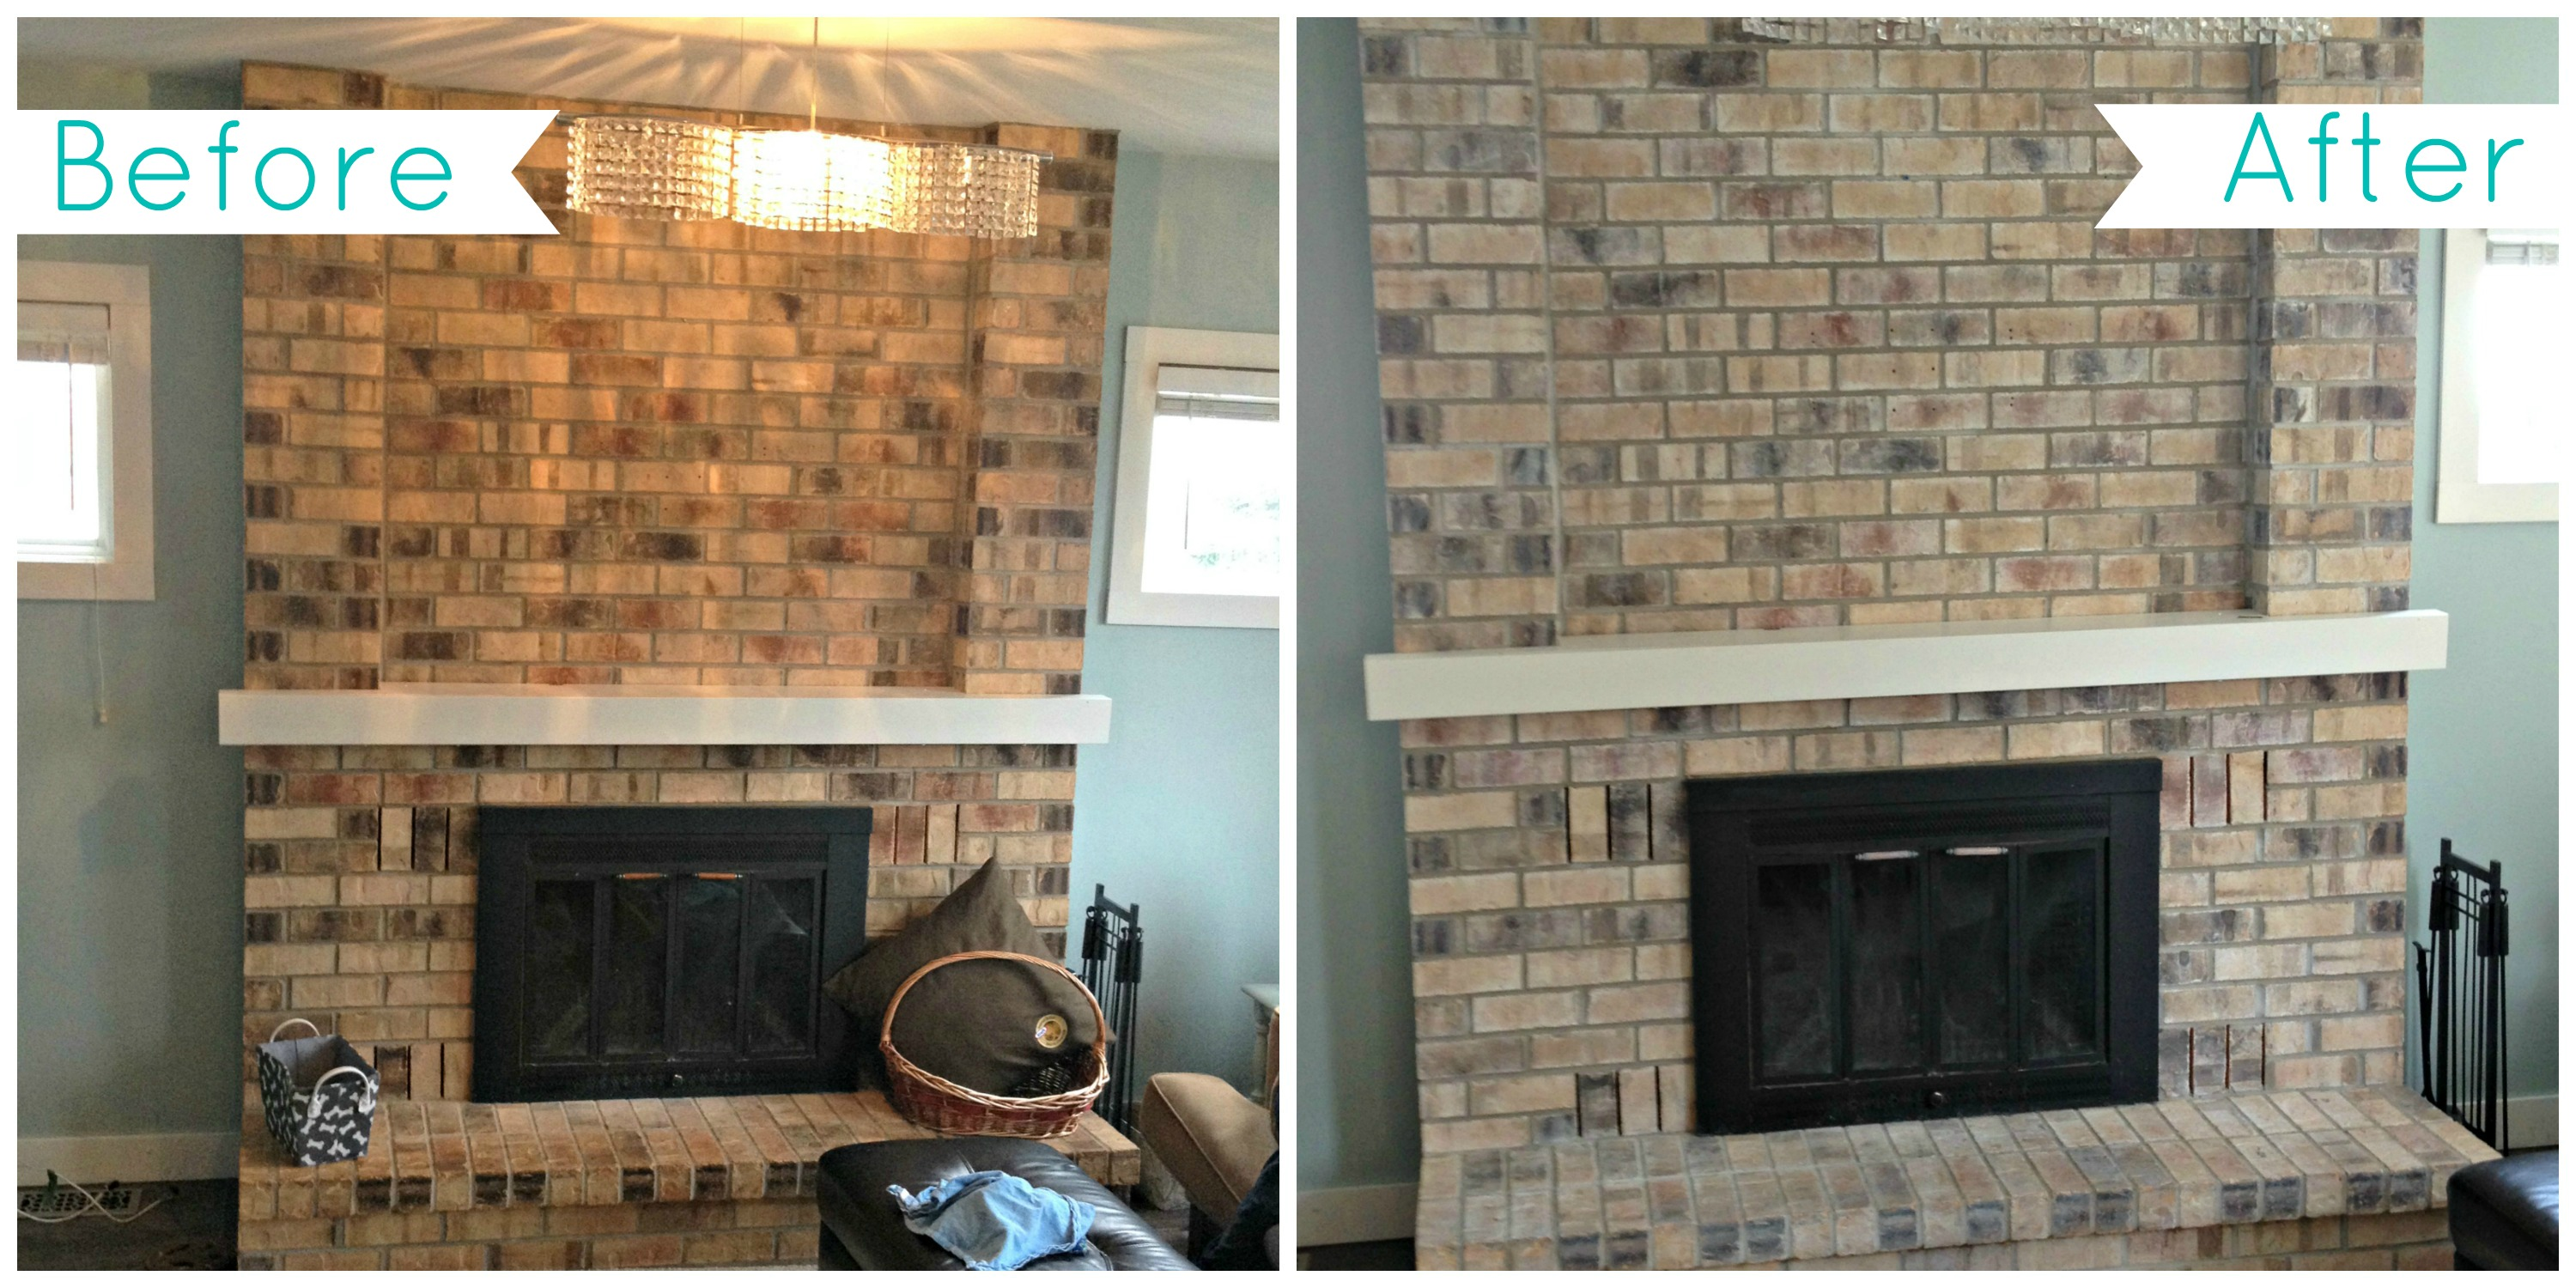 What to Consider in Painted Fireplace Brick : Painted Brick Fireplace Before And After. Painted brick fireplace before and after. fireplace decor